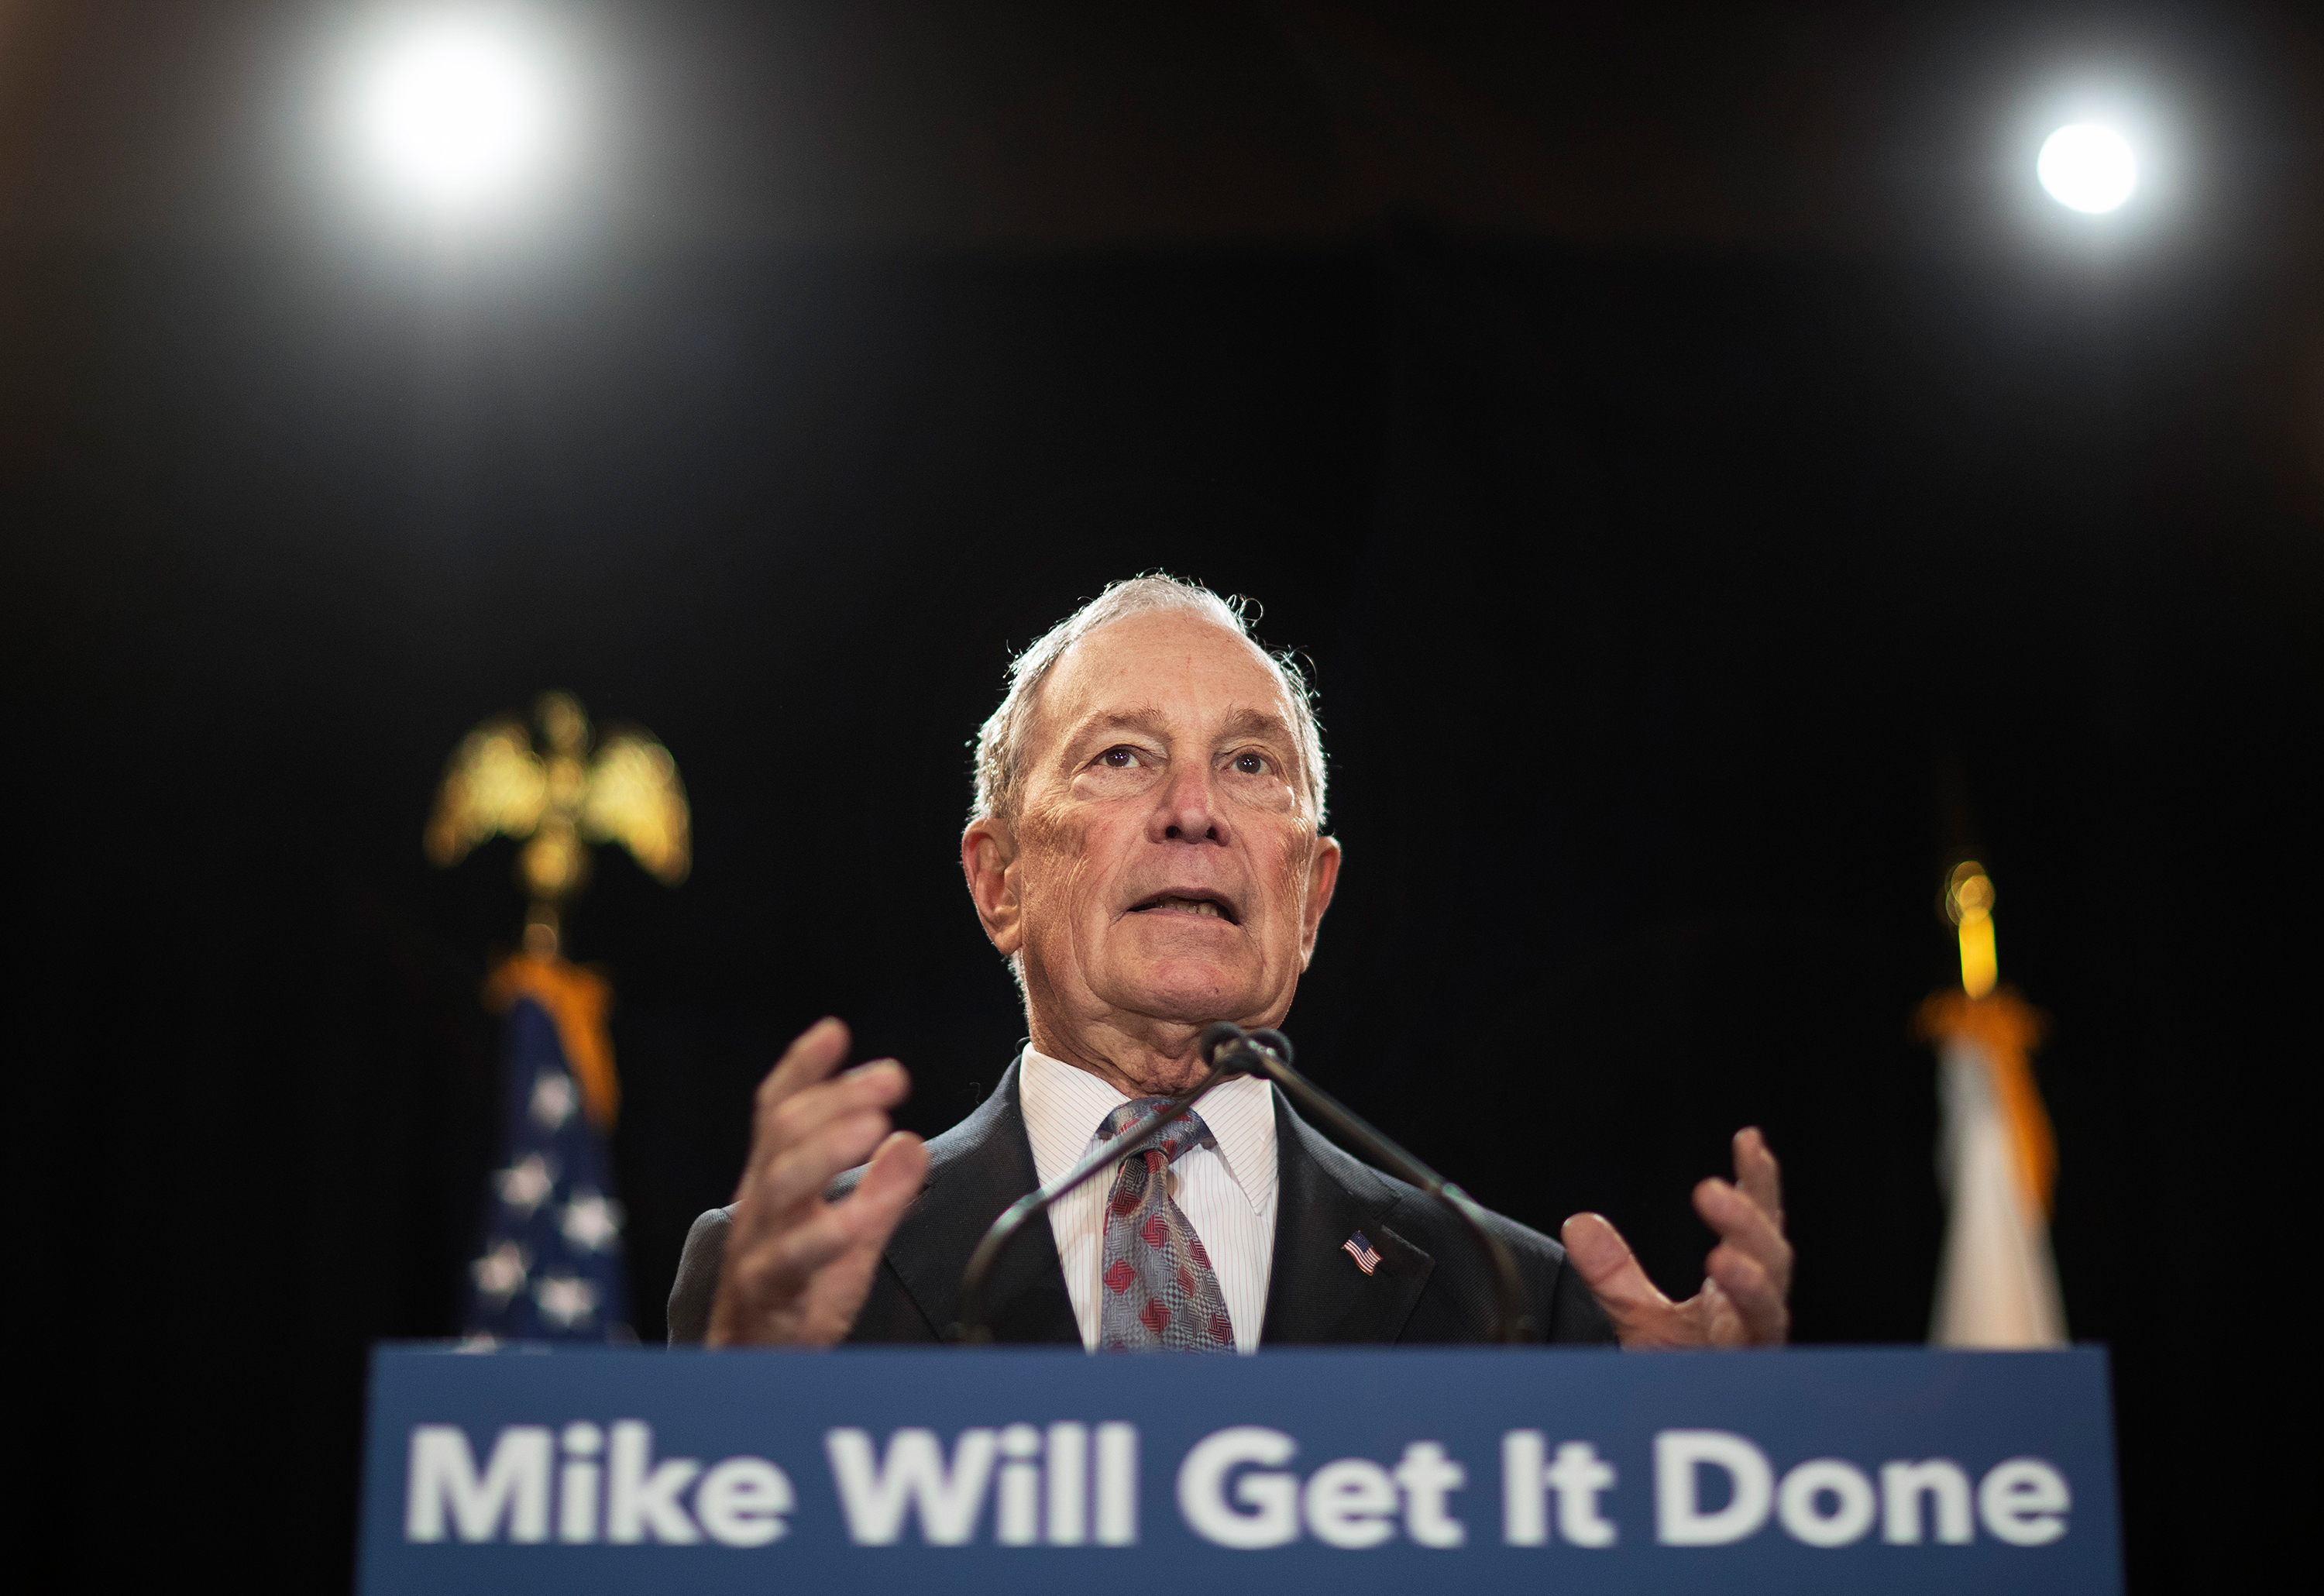 Bloomberg has pumped an unprecedented $464 million of his own fortune so far into White House bid